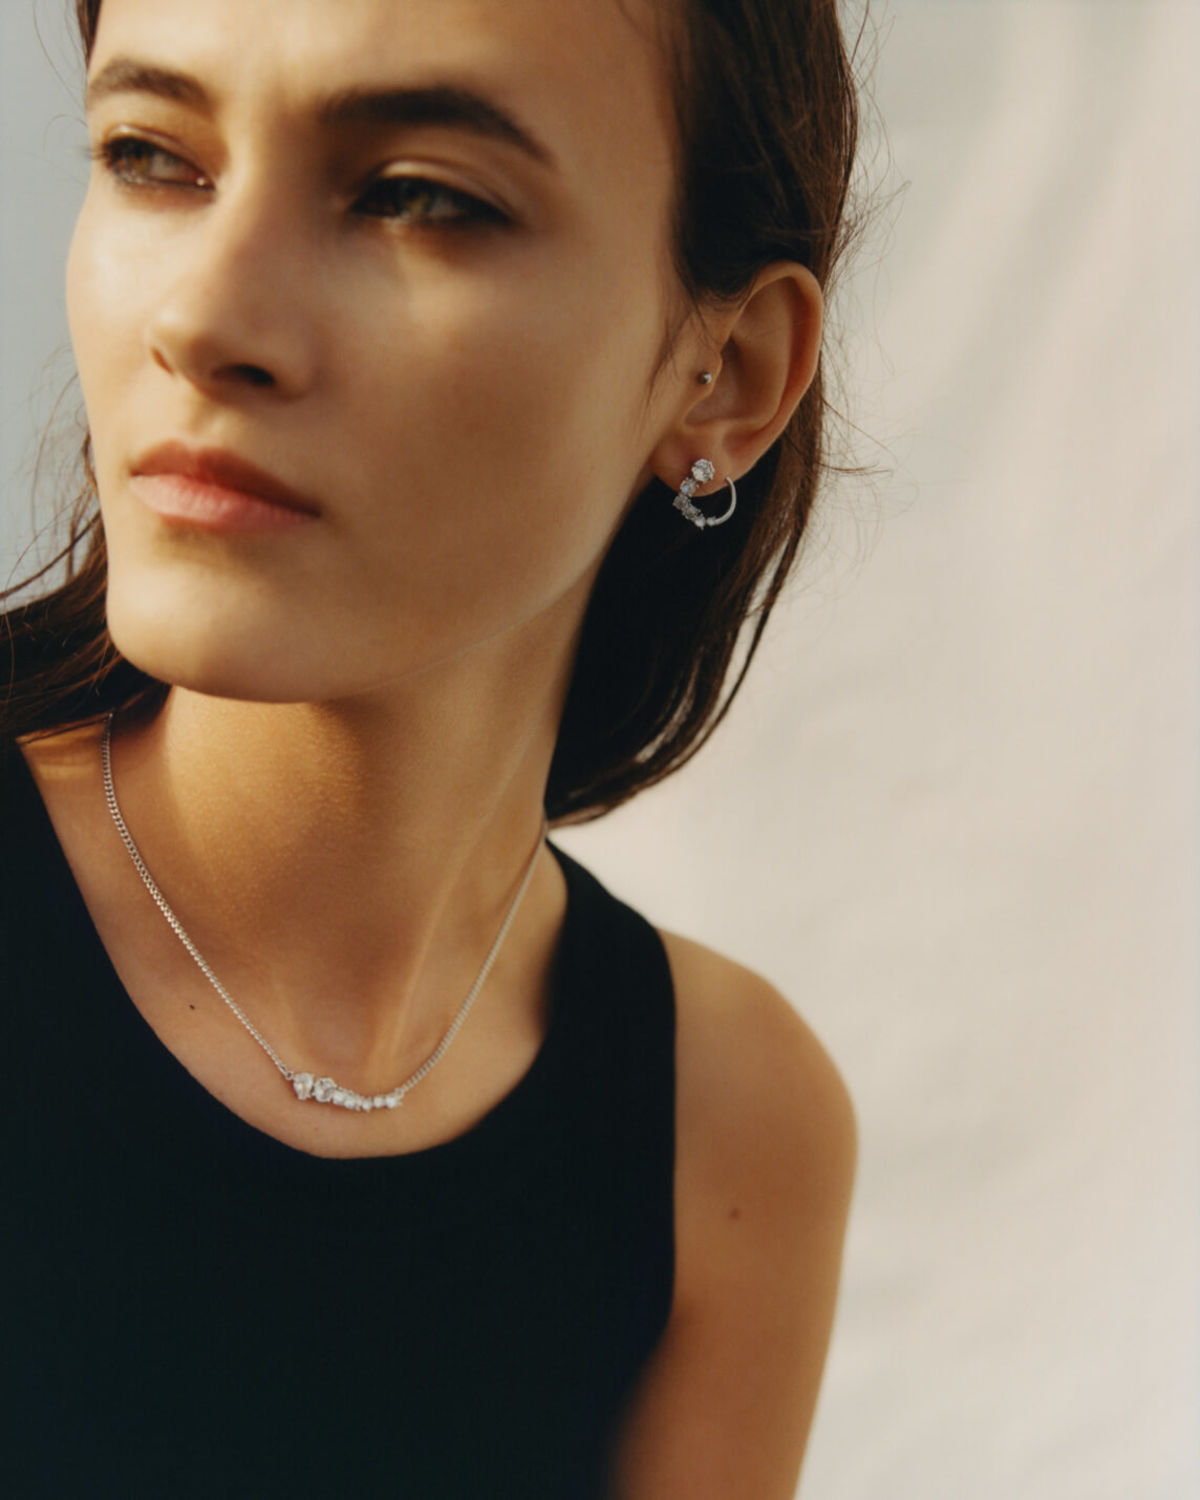 Portrait of a woman wearing a necklace and earings from our jewellery collection.